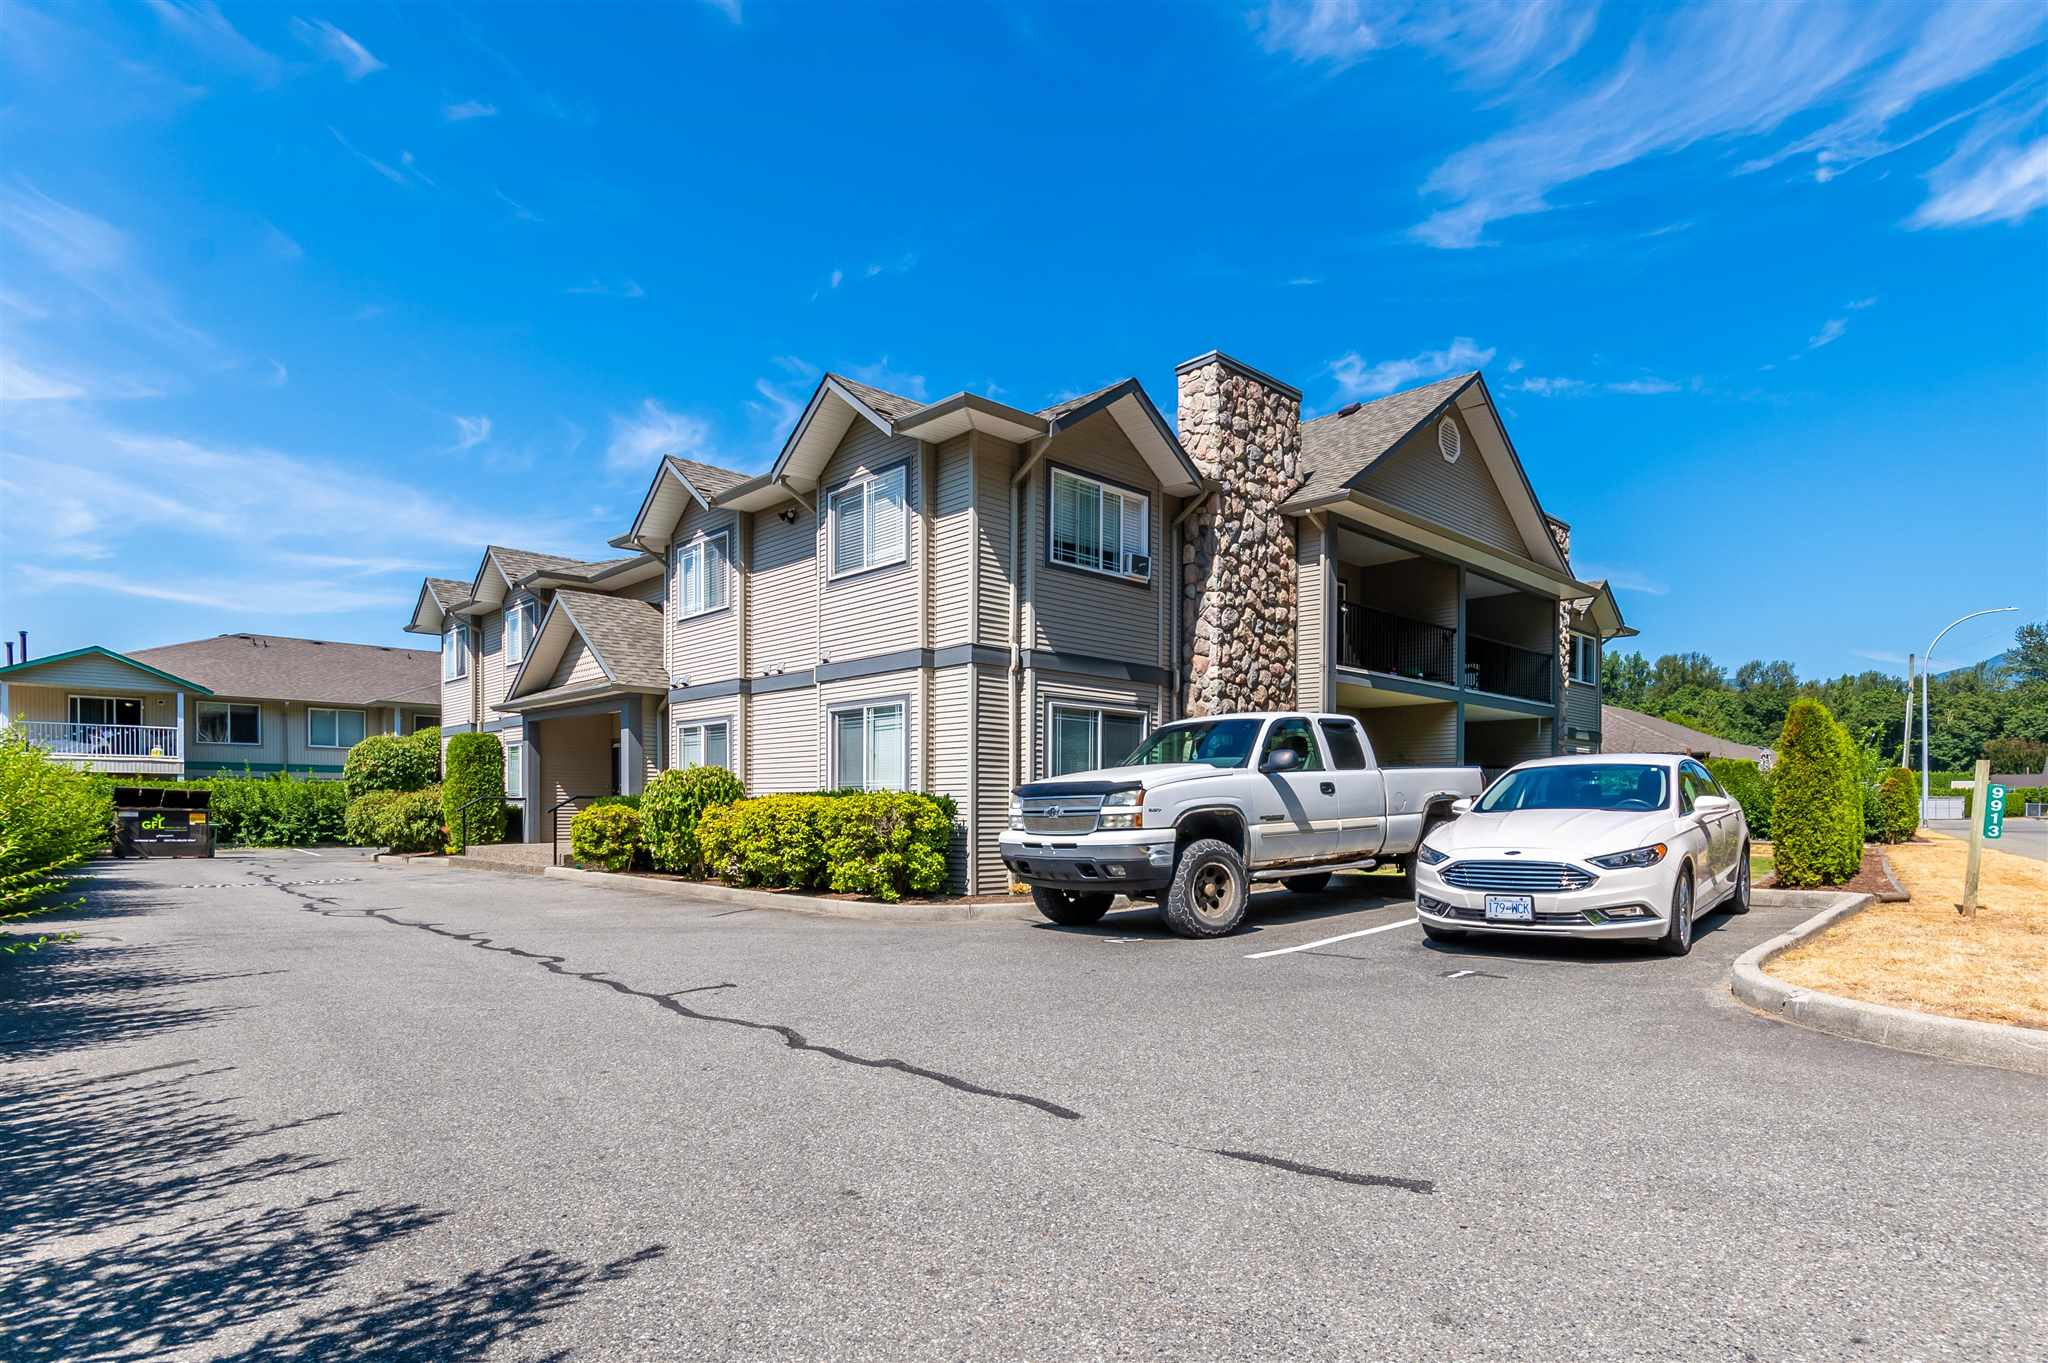 1 9913 QUARRY ROAD - Chilliwack N Yale-Well Townhouse for sale, 2 Bedrooms (R2605742)